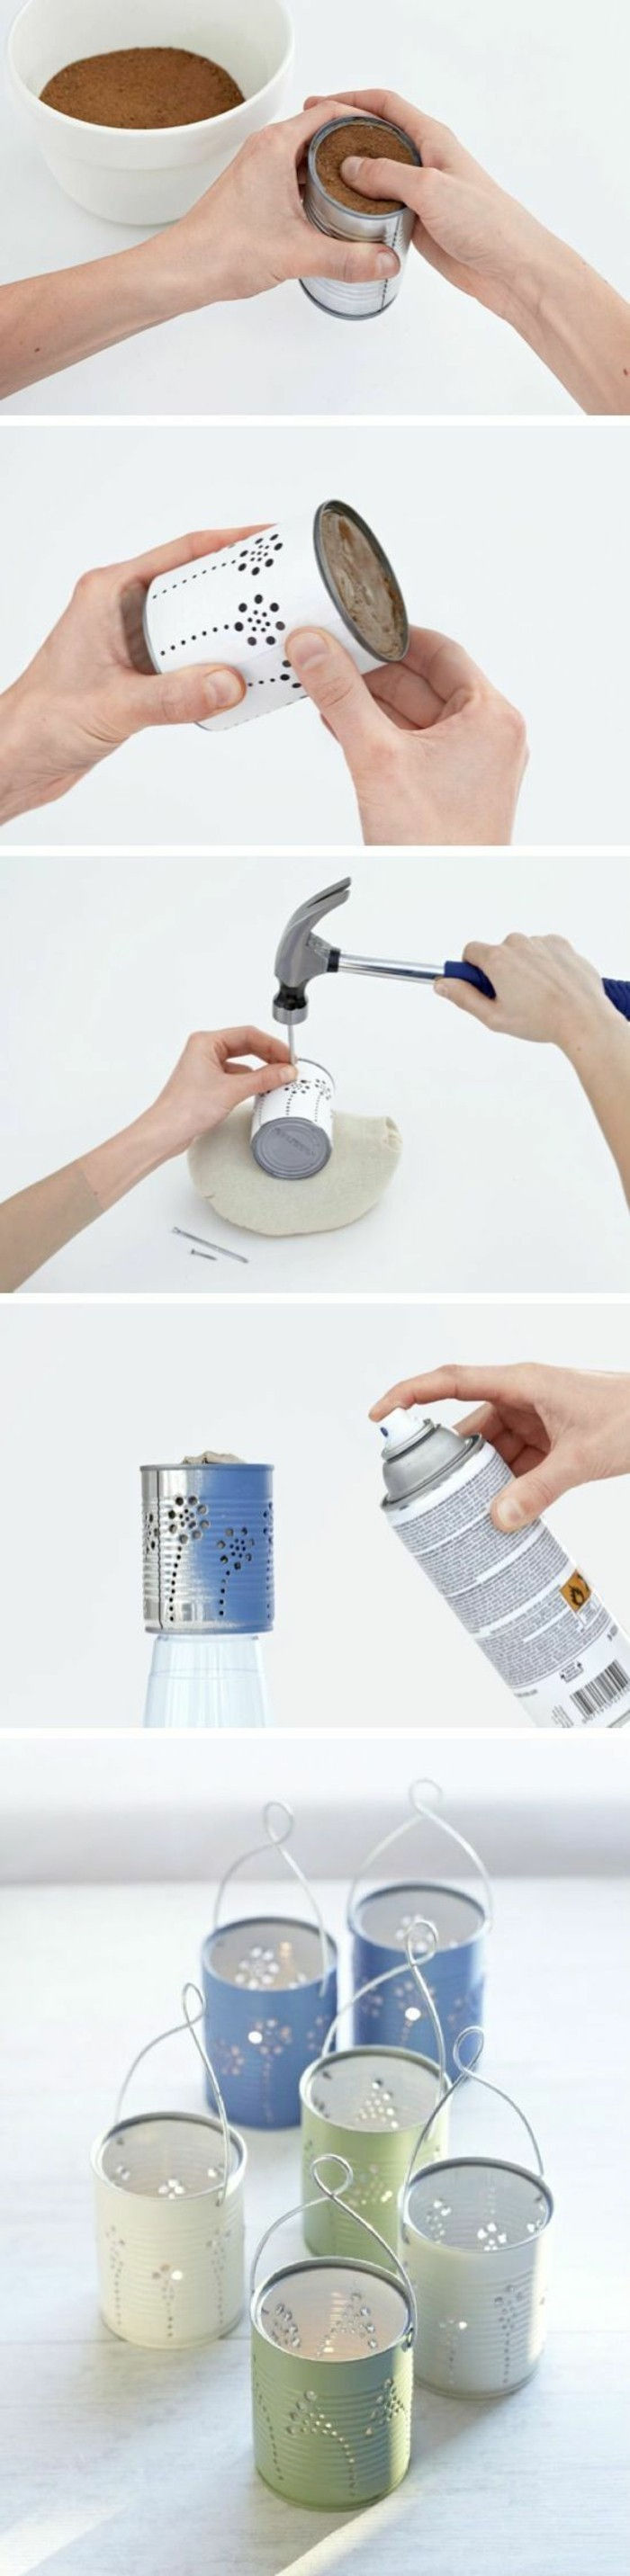 tinker-with-tin cans-spray-bottle-candlestick-yourself-make-hammer